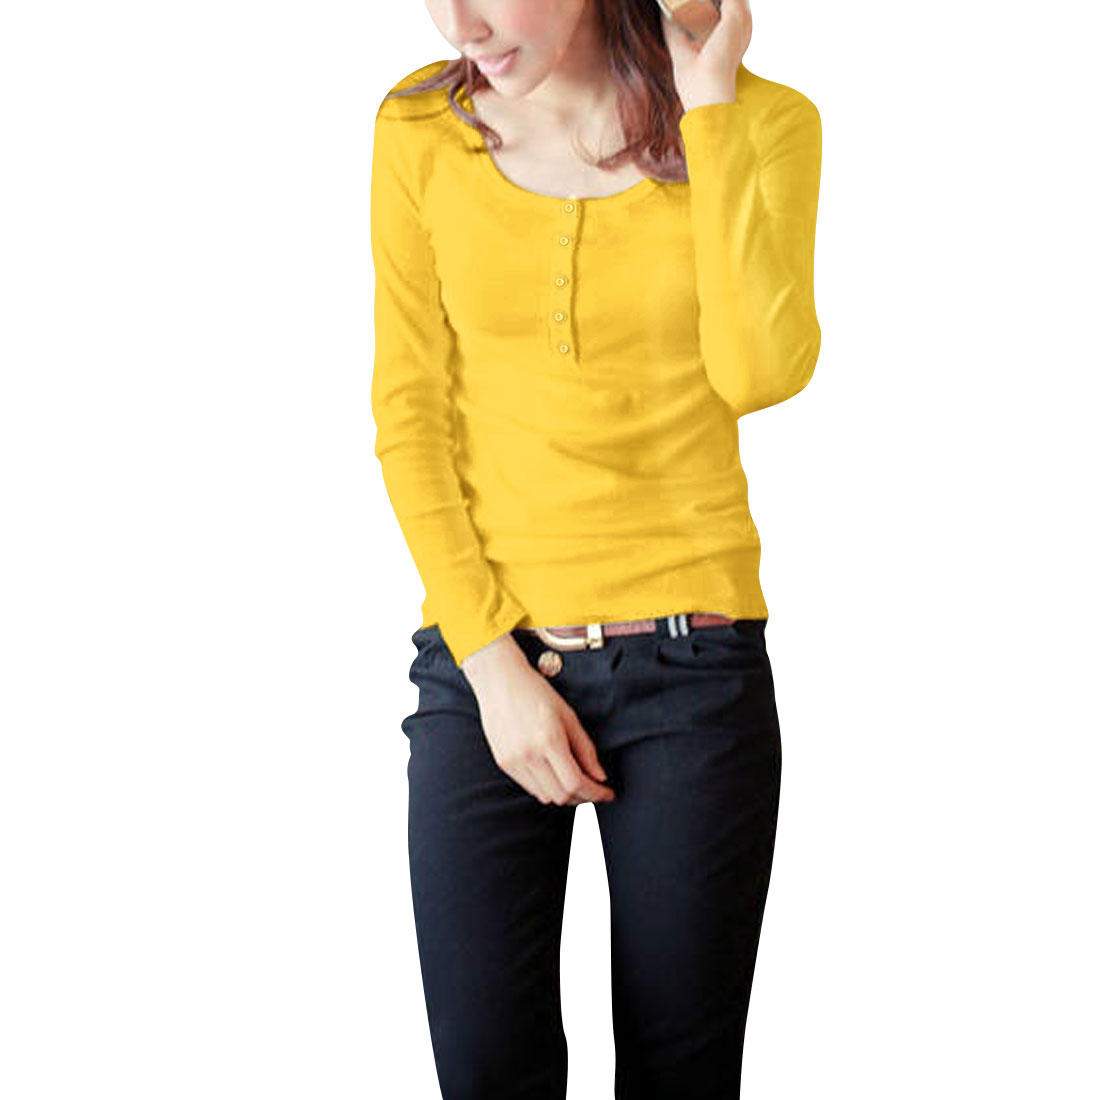 Ladies Yellow Scoop Neckline Pullover Stretchy Button Closure Detail Shirt X